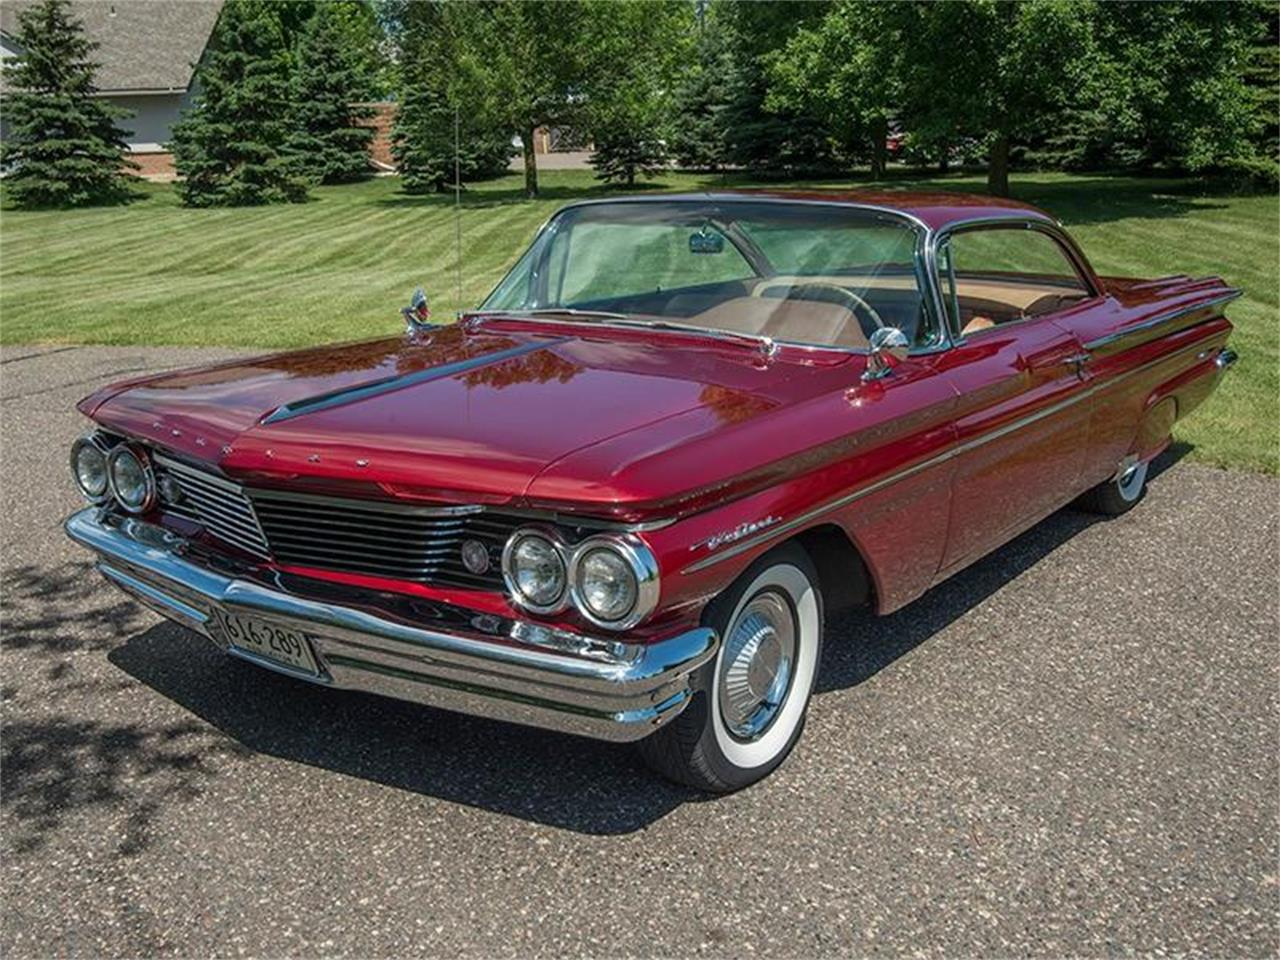 Large Picture of 1960 Pontiac Ventura located in Rogers Minnesota - $26,950.00 Offered by Ellingson Motorcars - LHB7